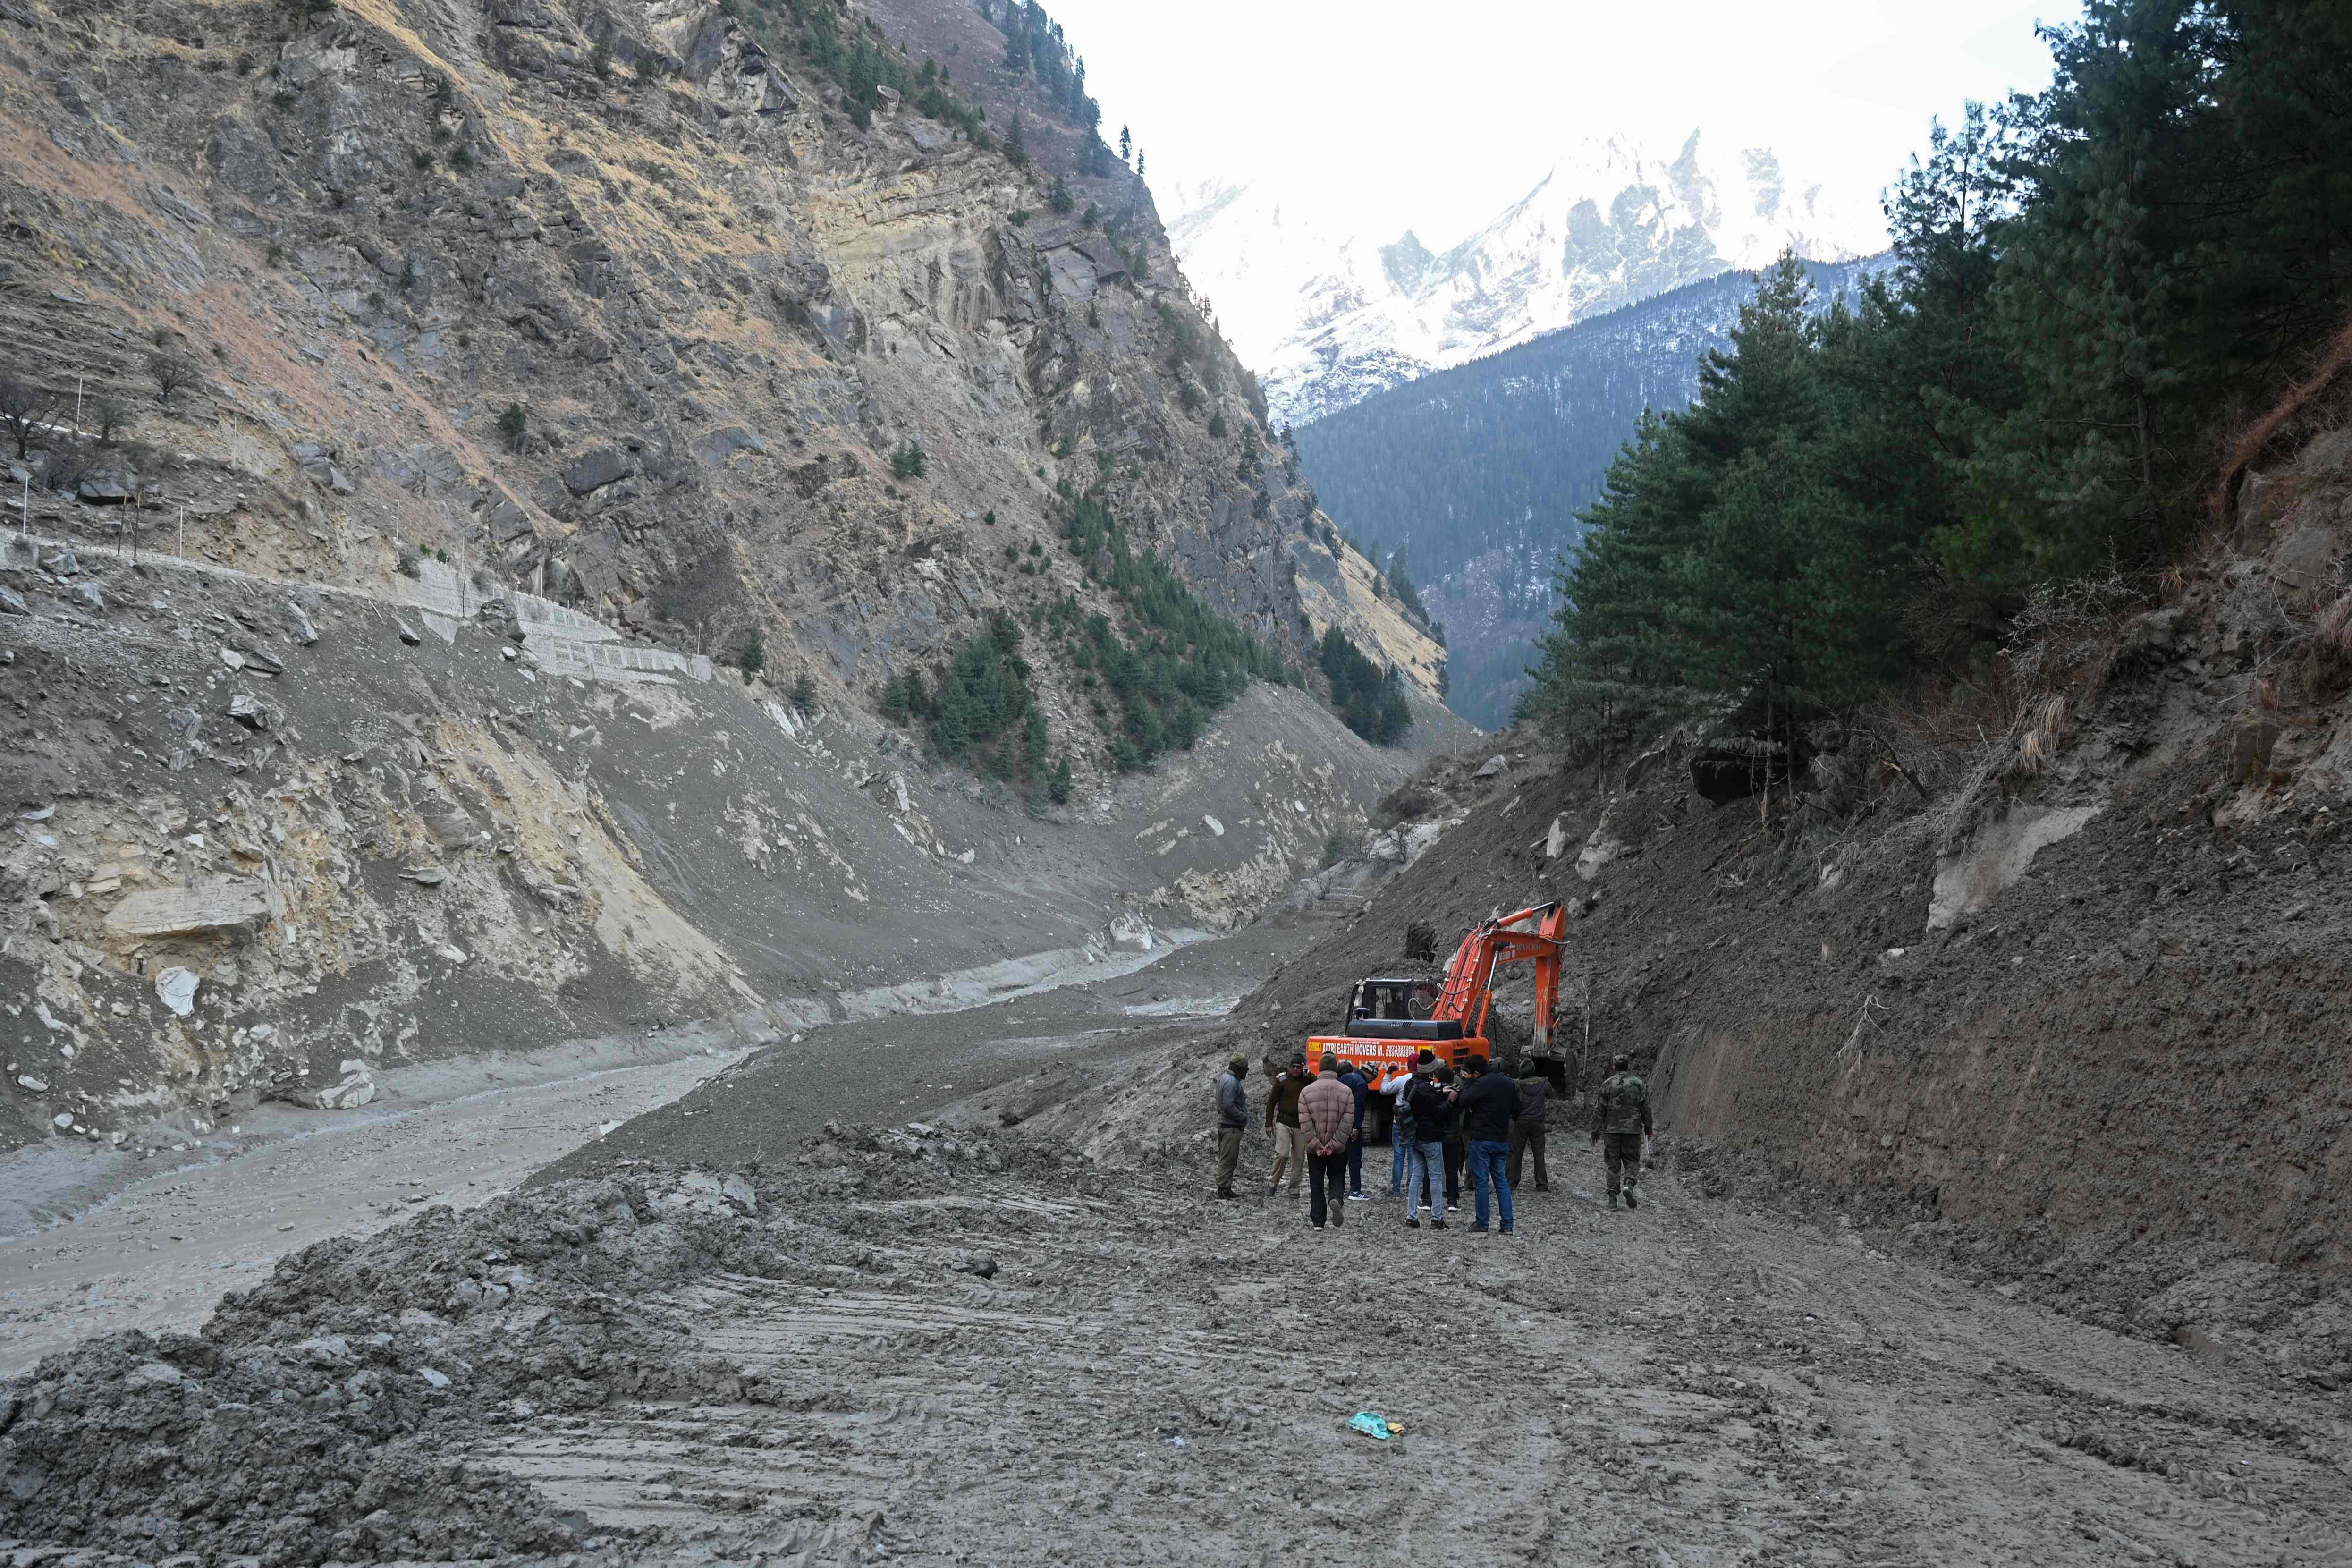 An excavator clears a road leading to the destroyed Raini bridge in the Chamoli district of Uttarakhand, India, on Feb. 8, 2021, after it was washed away by a flash flood caused by a glacier burst a day earlier.